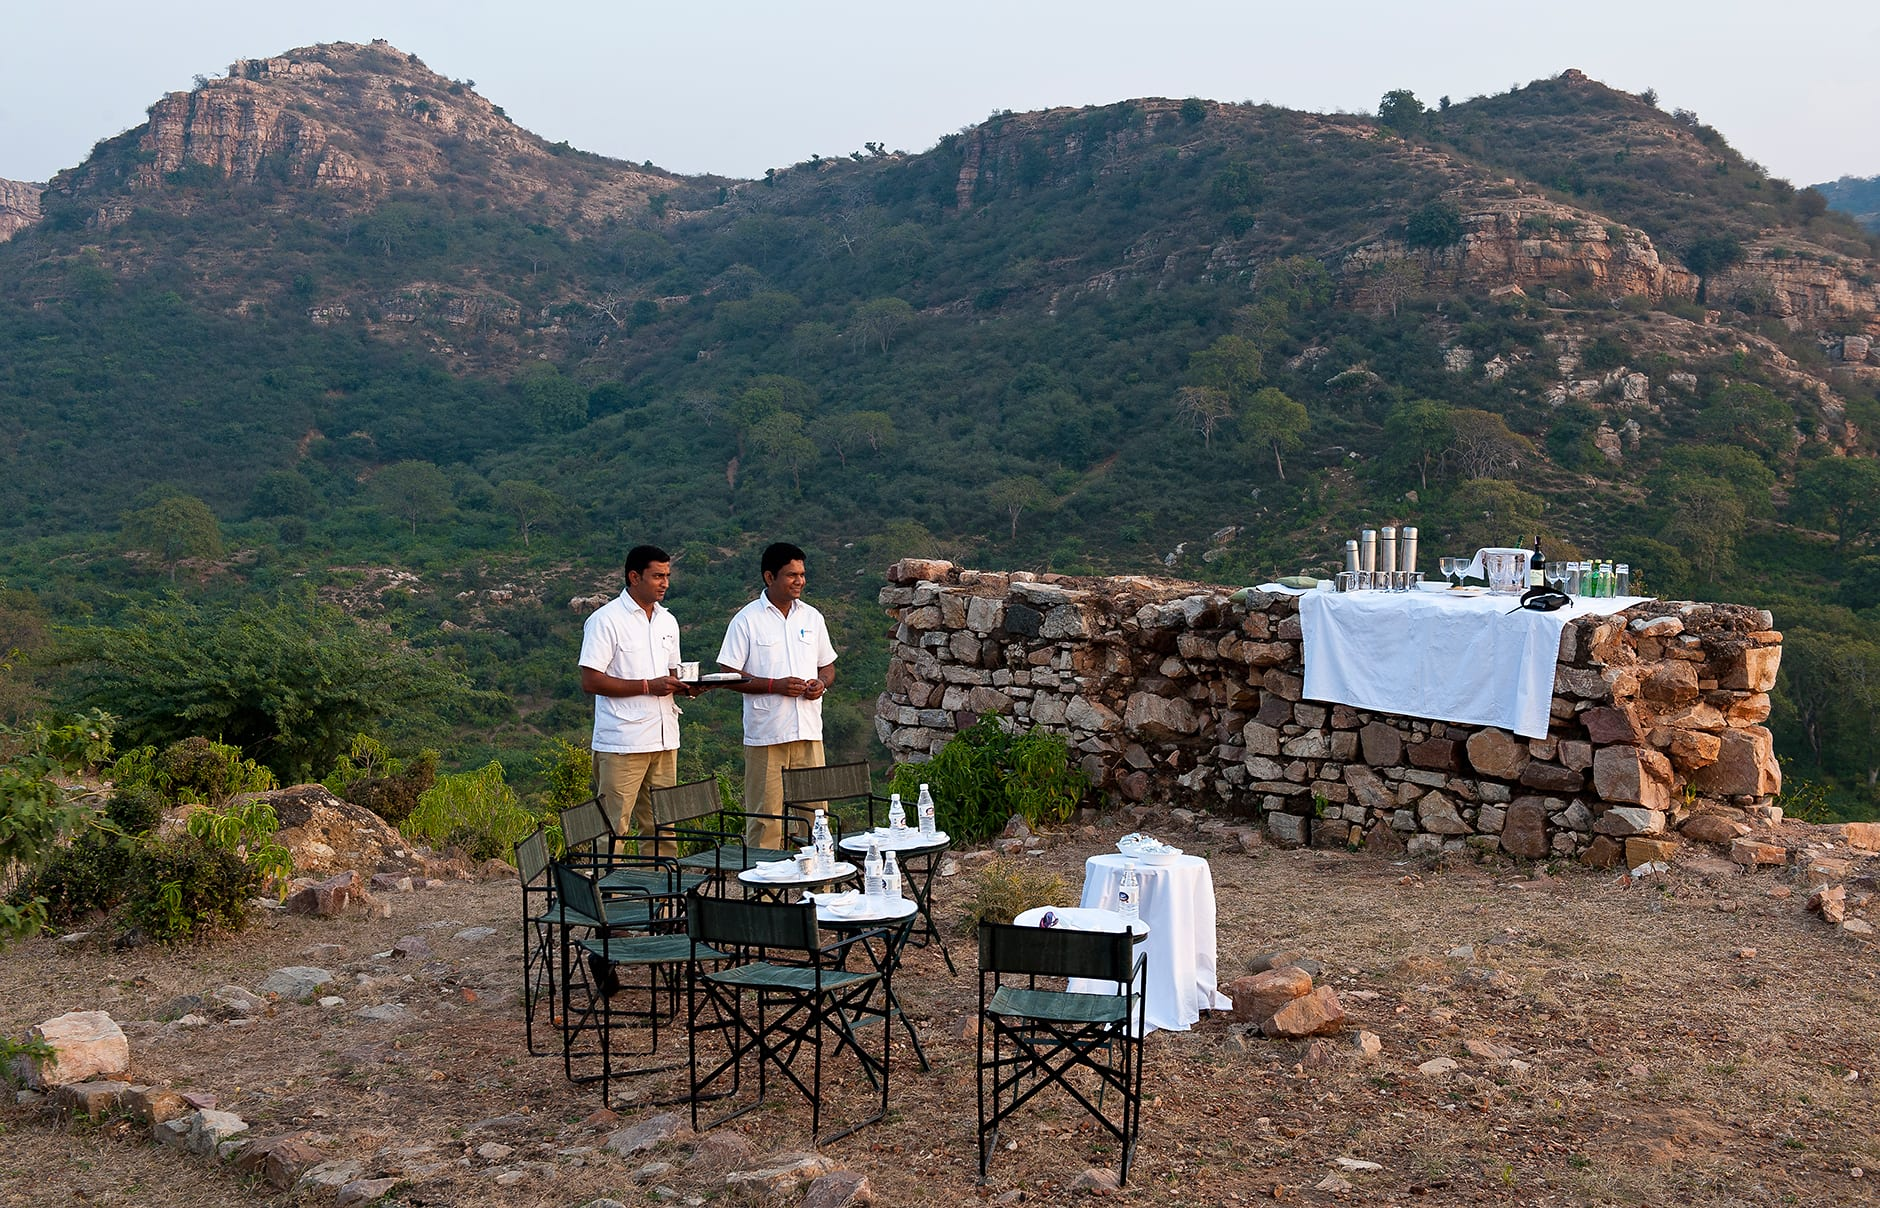 Sun Downers at the Sherpur Hillock. Aman-i-Khas, Ranthambhore, India. © Amanresorts